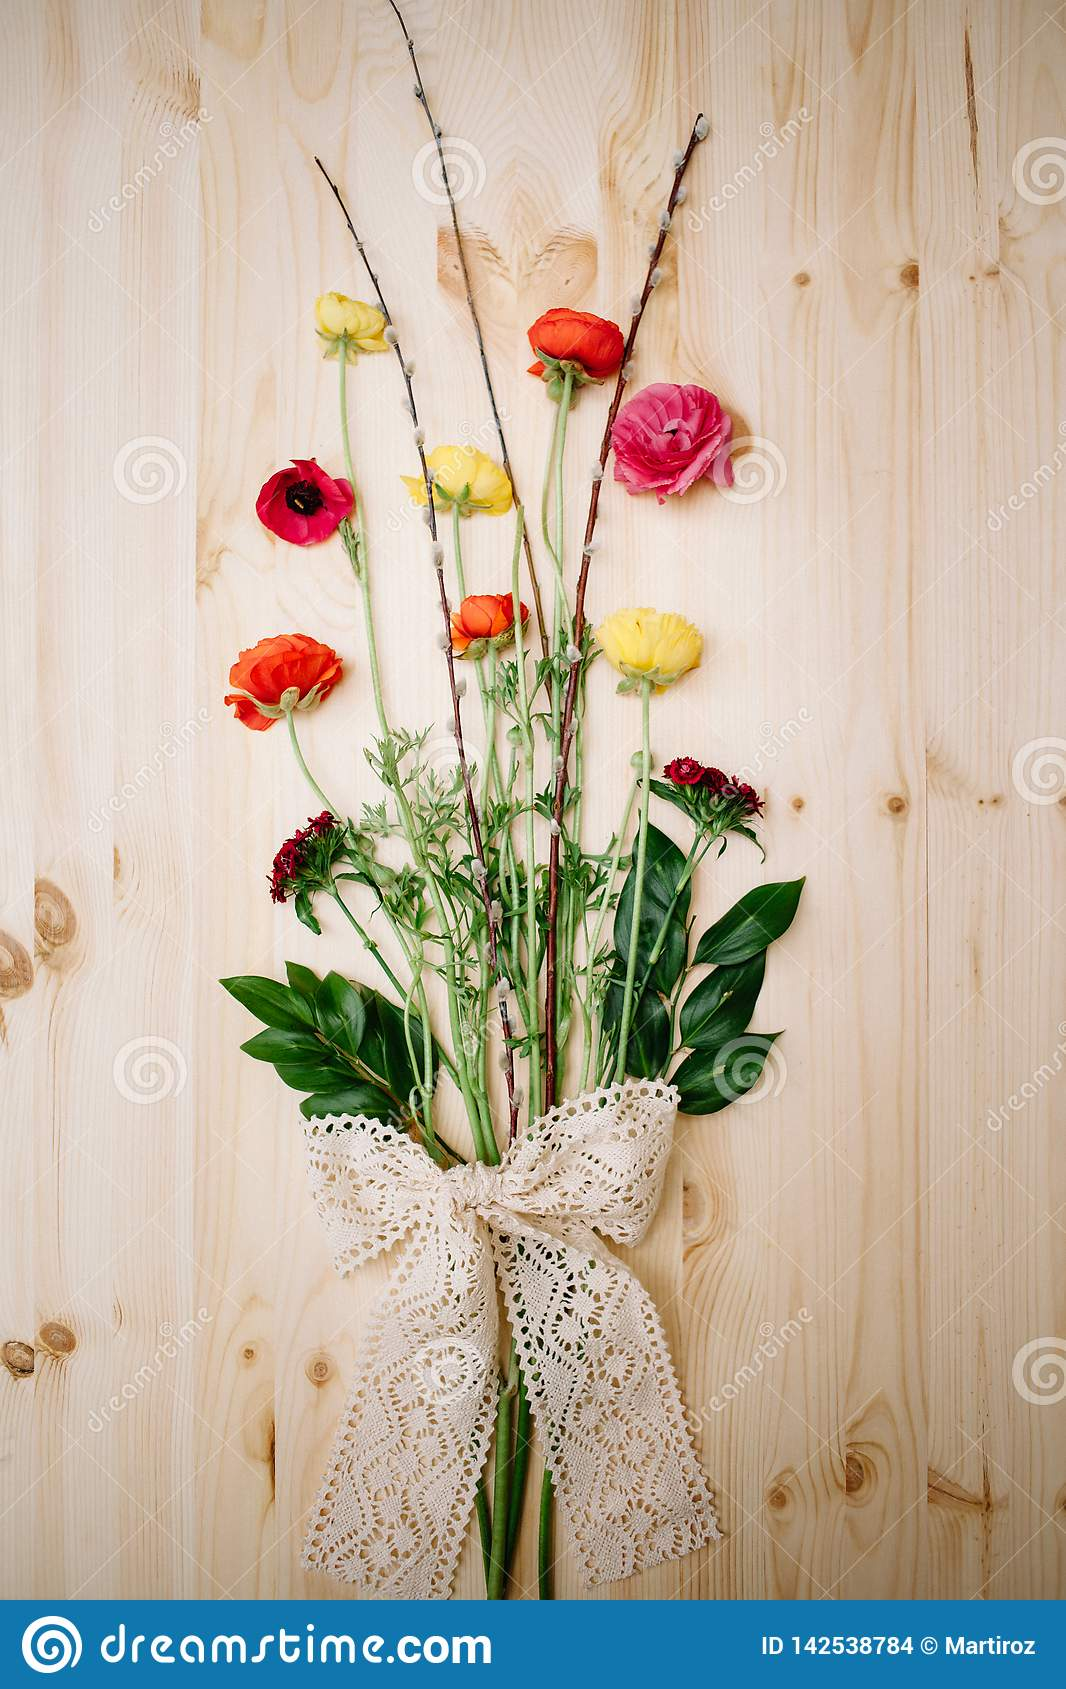 Spring flowers anemones and willow on a wooden background tied with lace ribbon